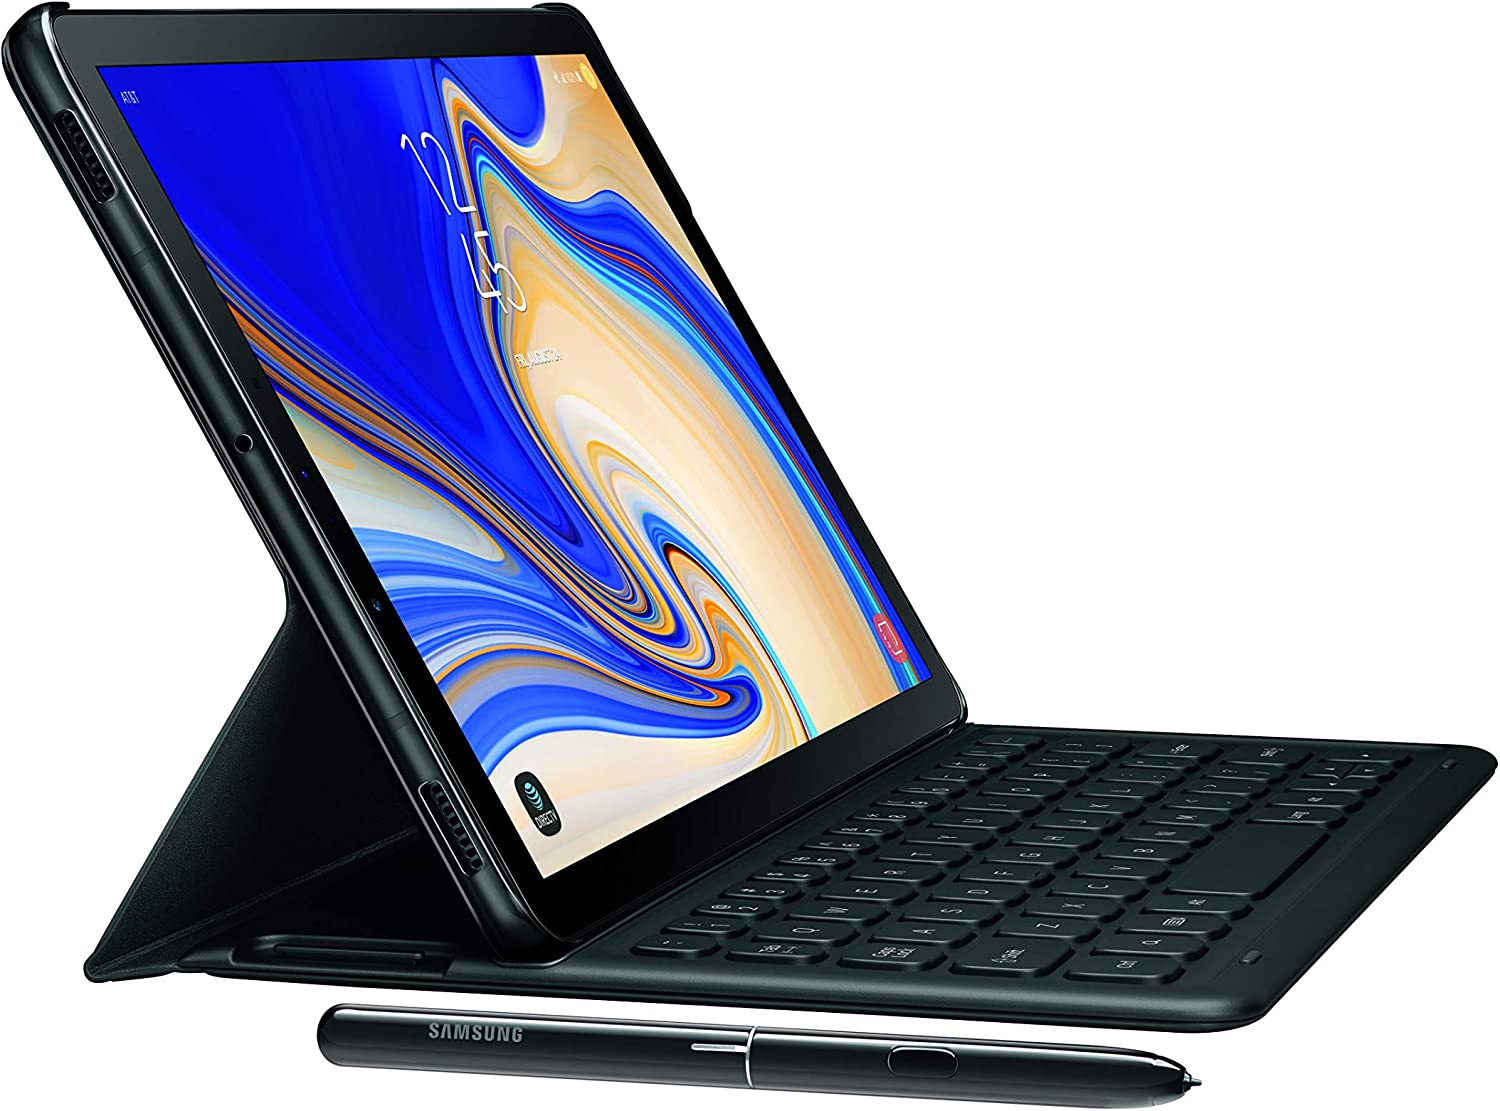 Samsung Electronics Ej Ft830ubeguj Galaxy Tab S4 Book Cover Keyboard Black Computers Accessories